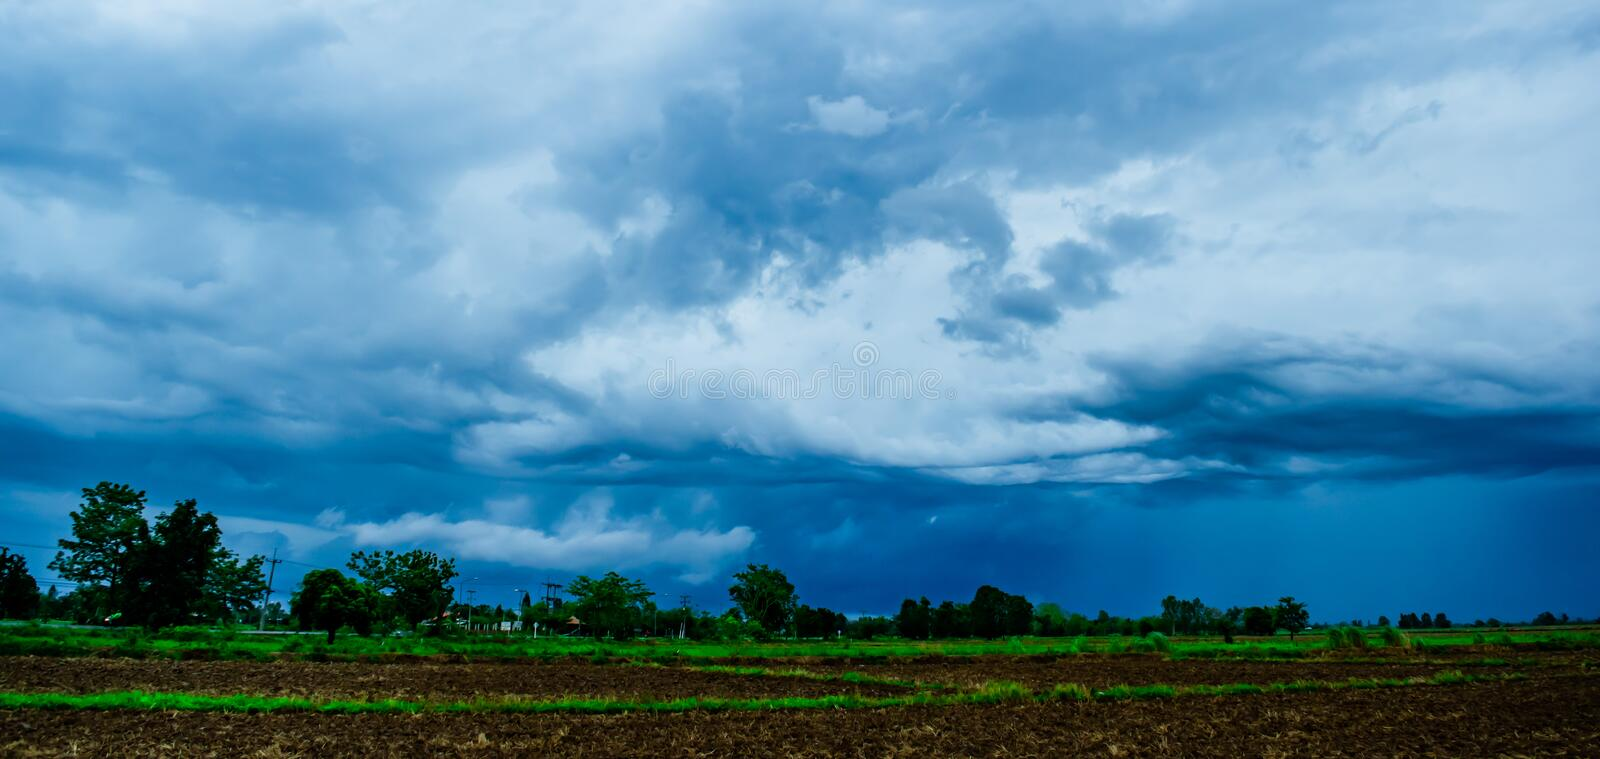 Beautiful blue sky and many white cloudy background over the green field in countryside landscape on rainy season. Beautiful blue sky background and white stock photography